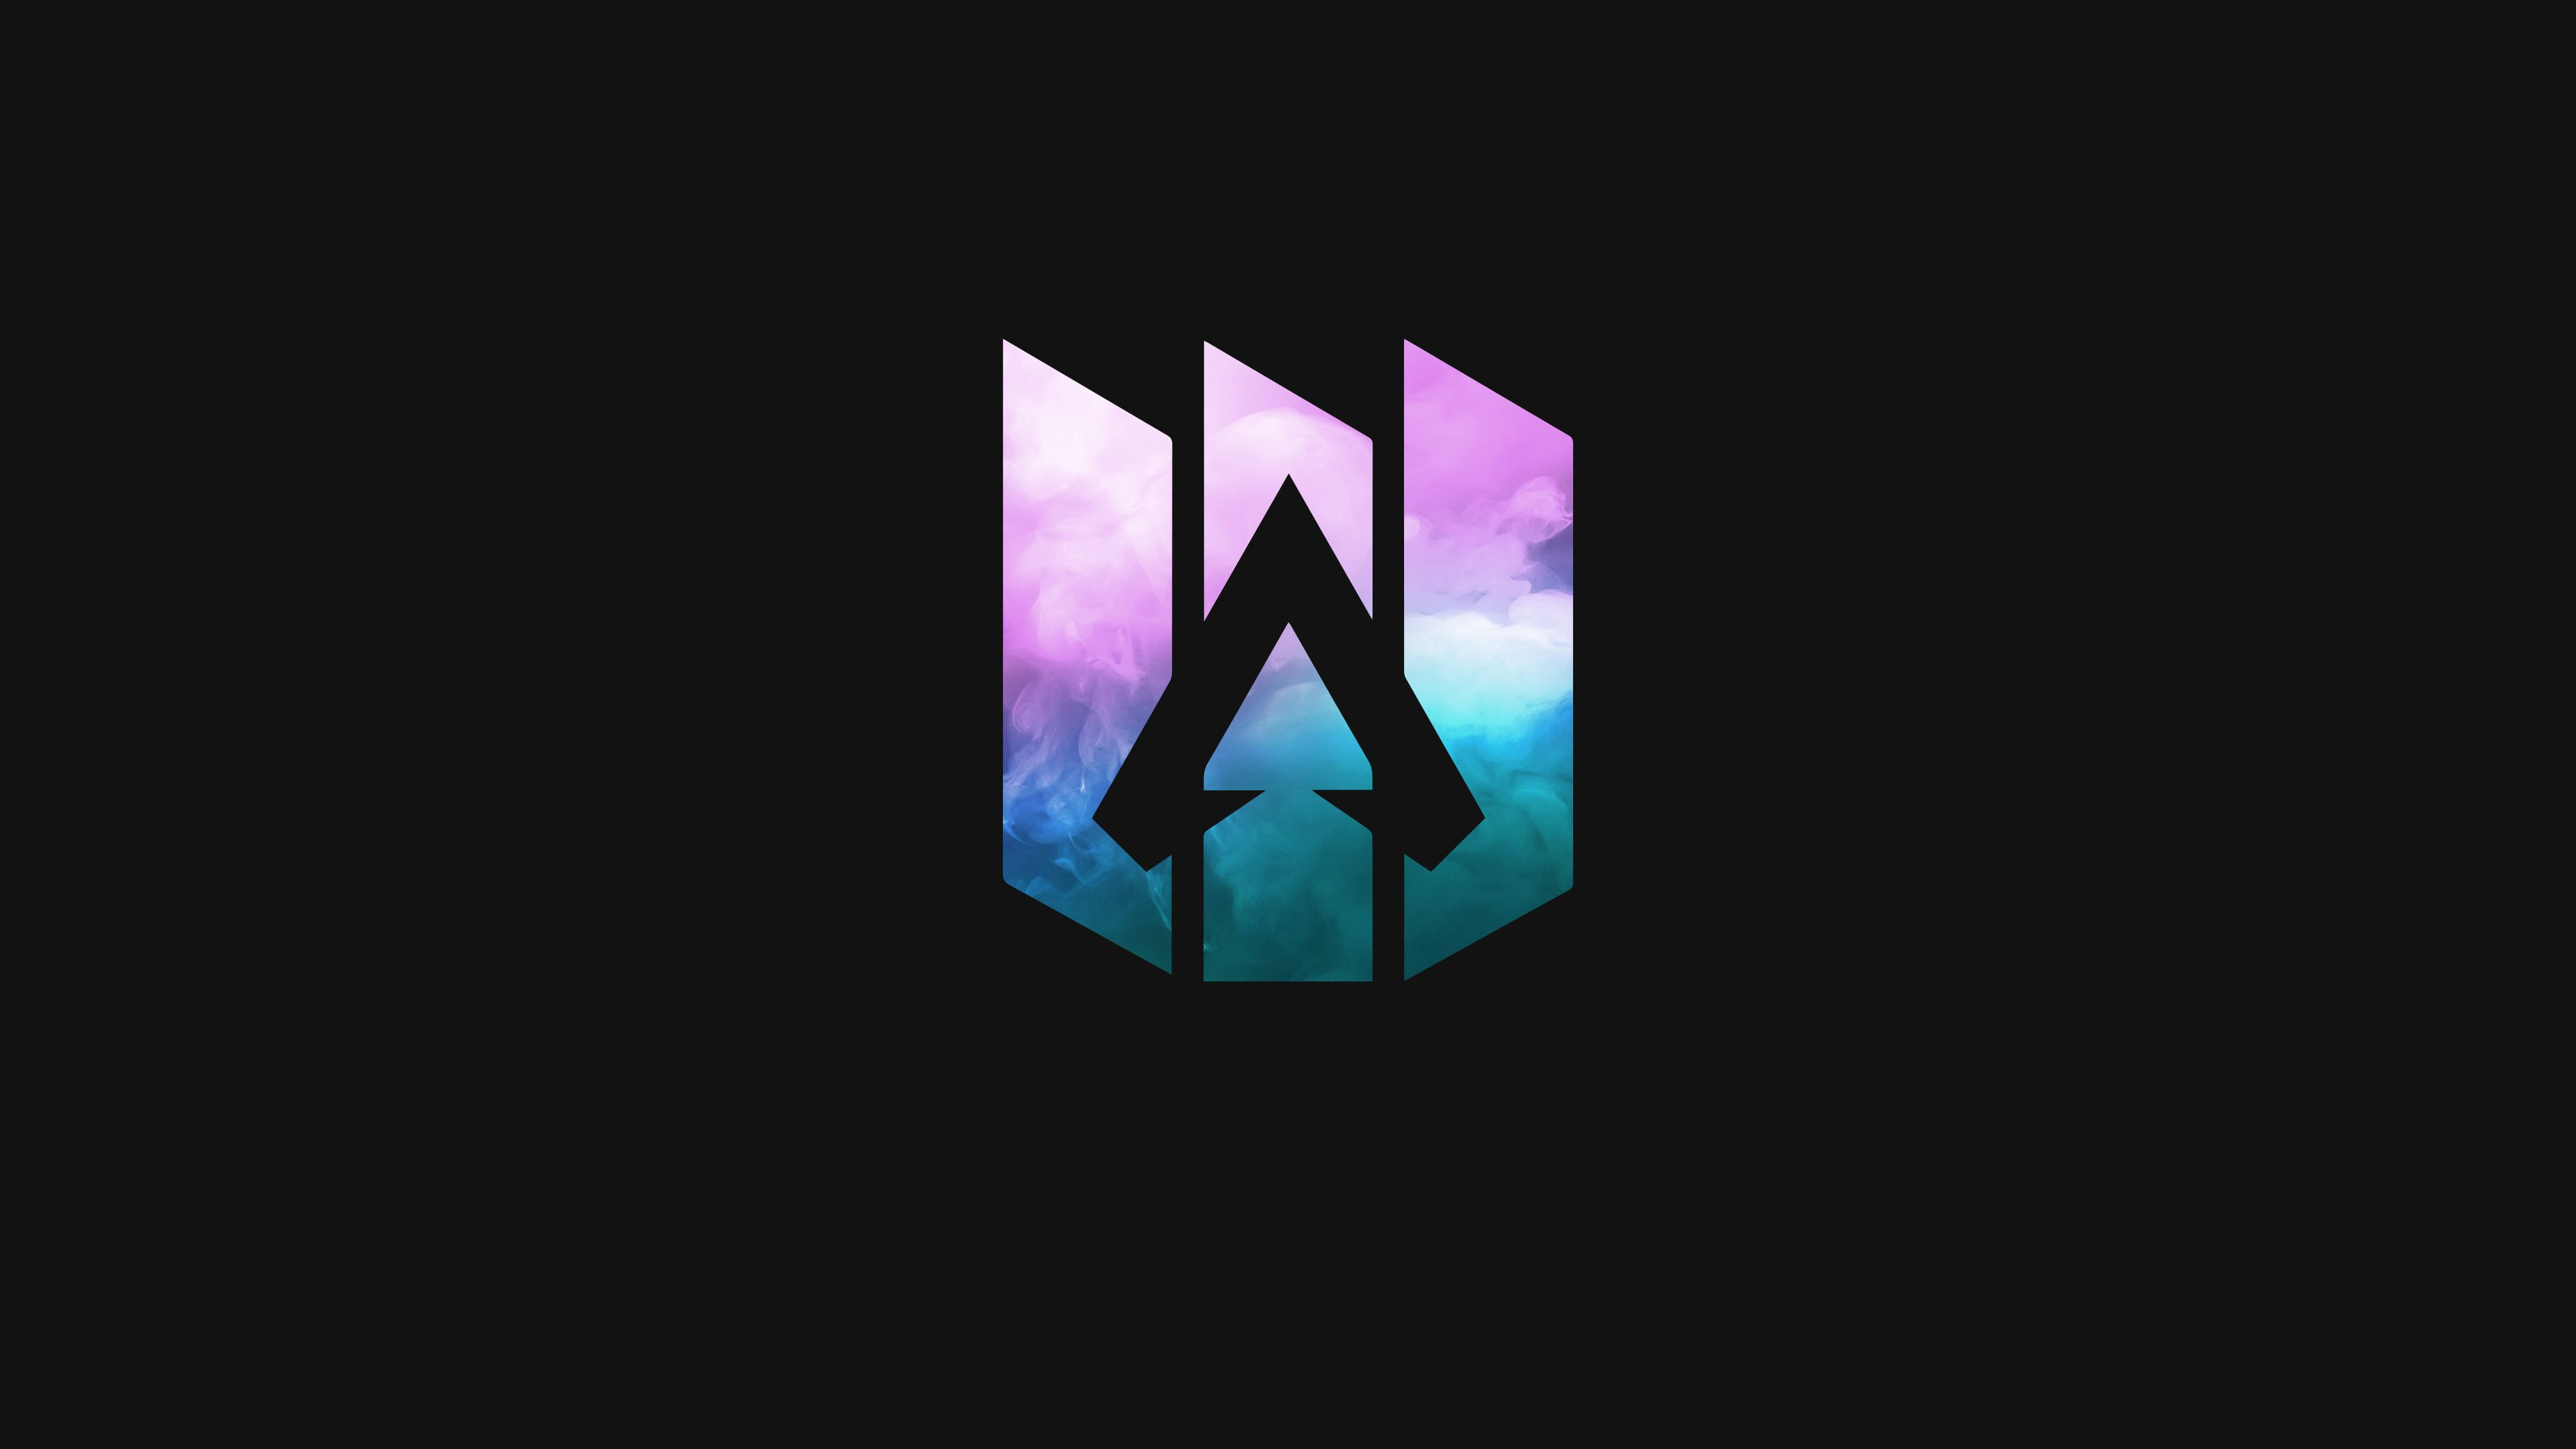 Apex Legends Minimalist Wallpaper Minimalist Wallpaper Gaming Wallpapers Apex Logo